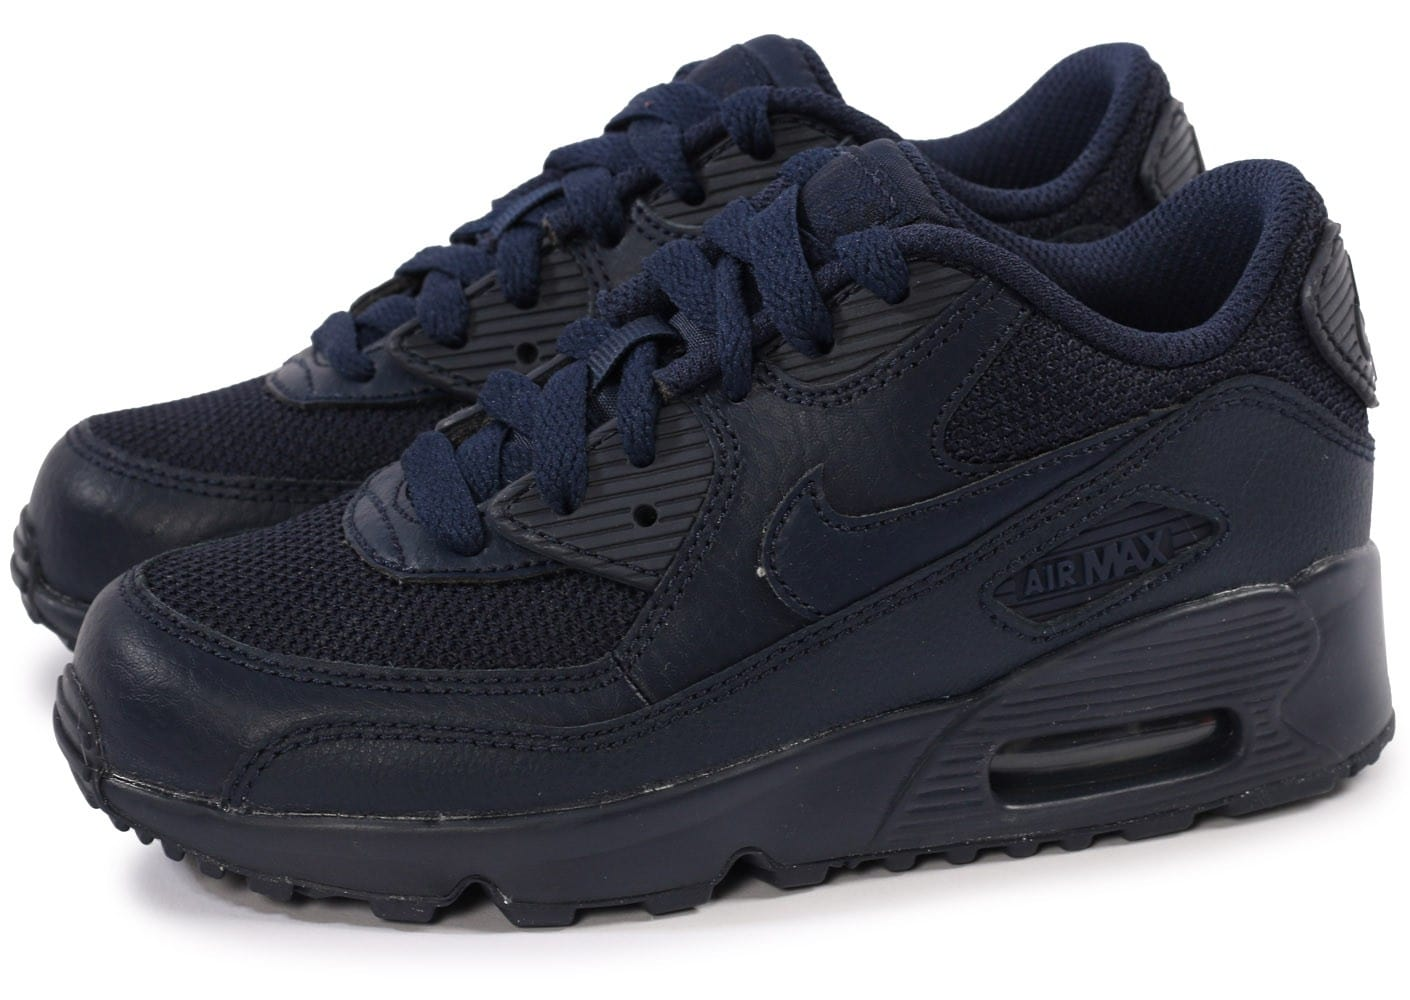 newest 24288 b6891 nike air max 2016 bleu nuit